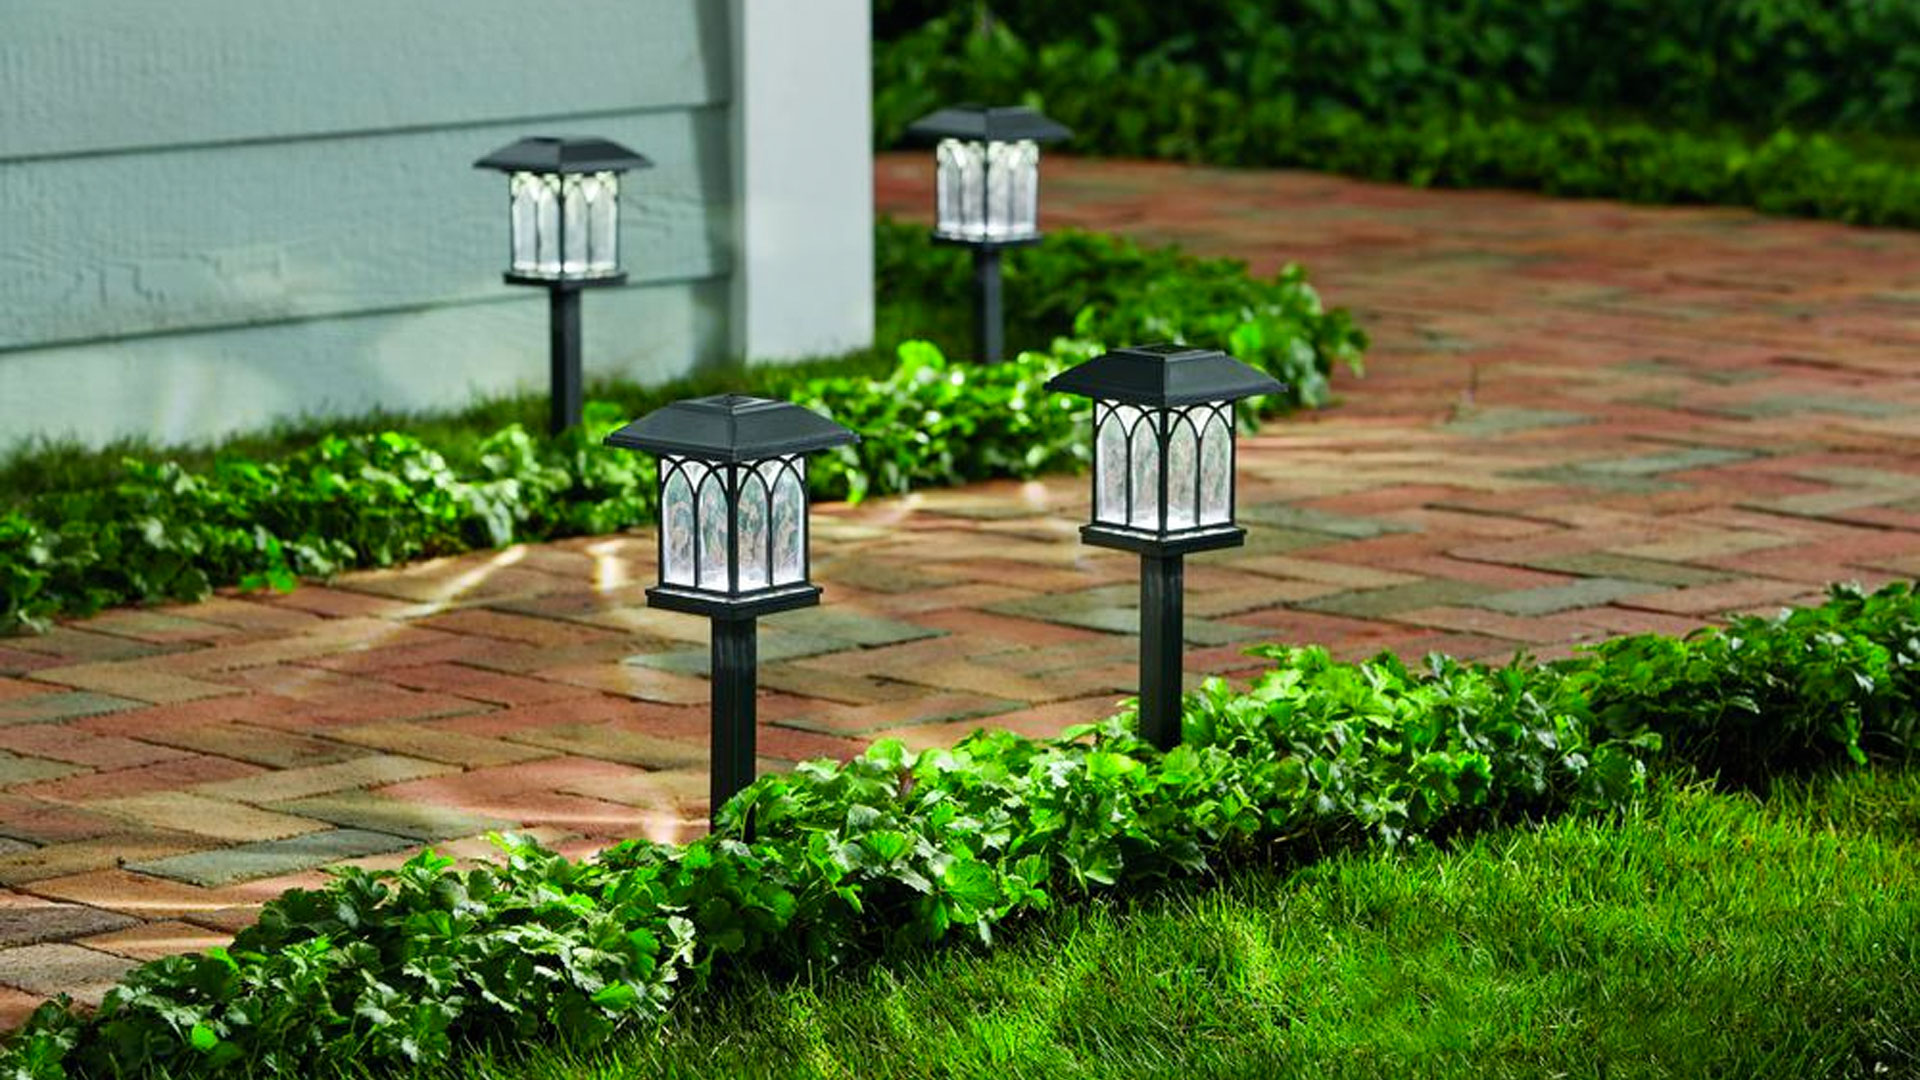 Upgrade Your Outdoor Space With Five Led Solar Path Lights For 2 50 Each 9to5toys